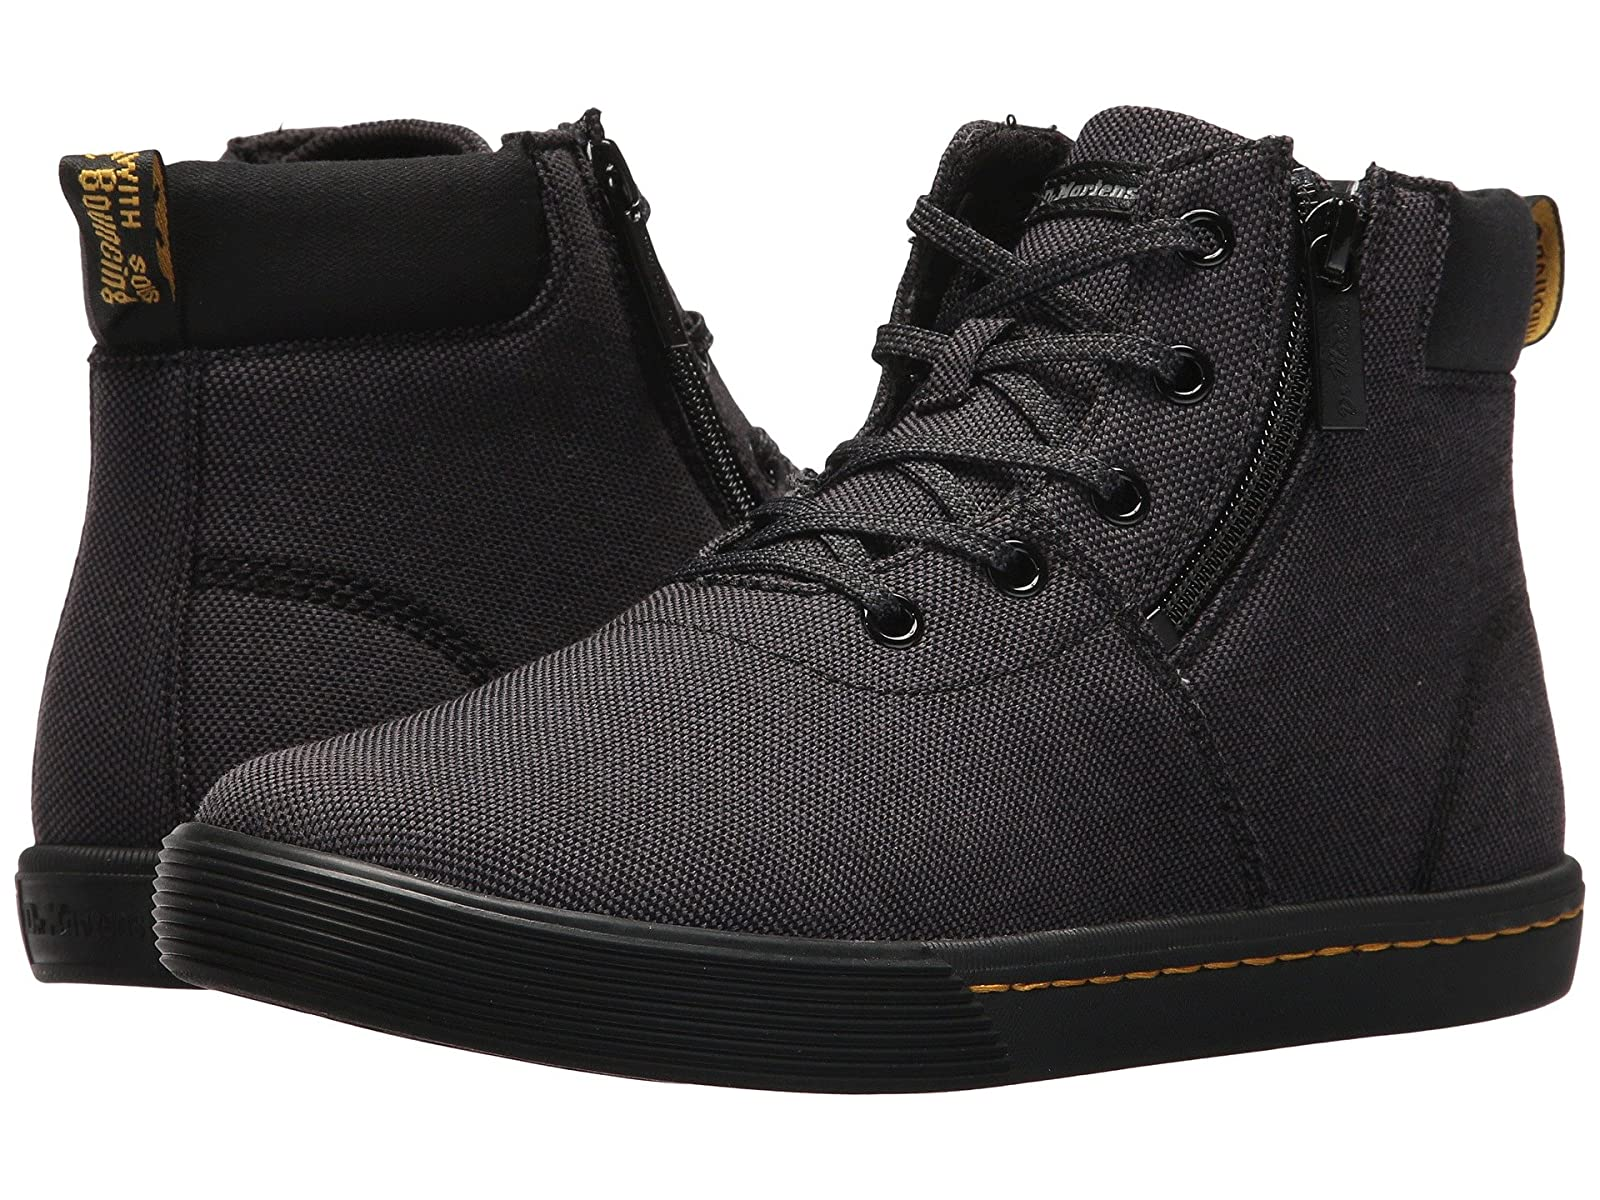 Dr. Martens MaegleyCheap and distinctive eye-catching shoes